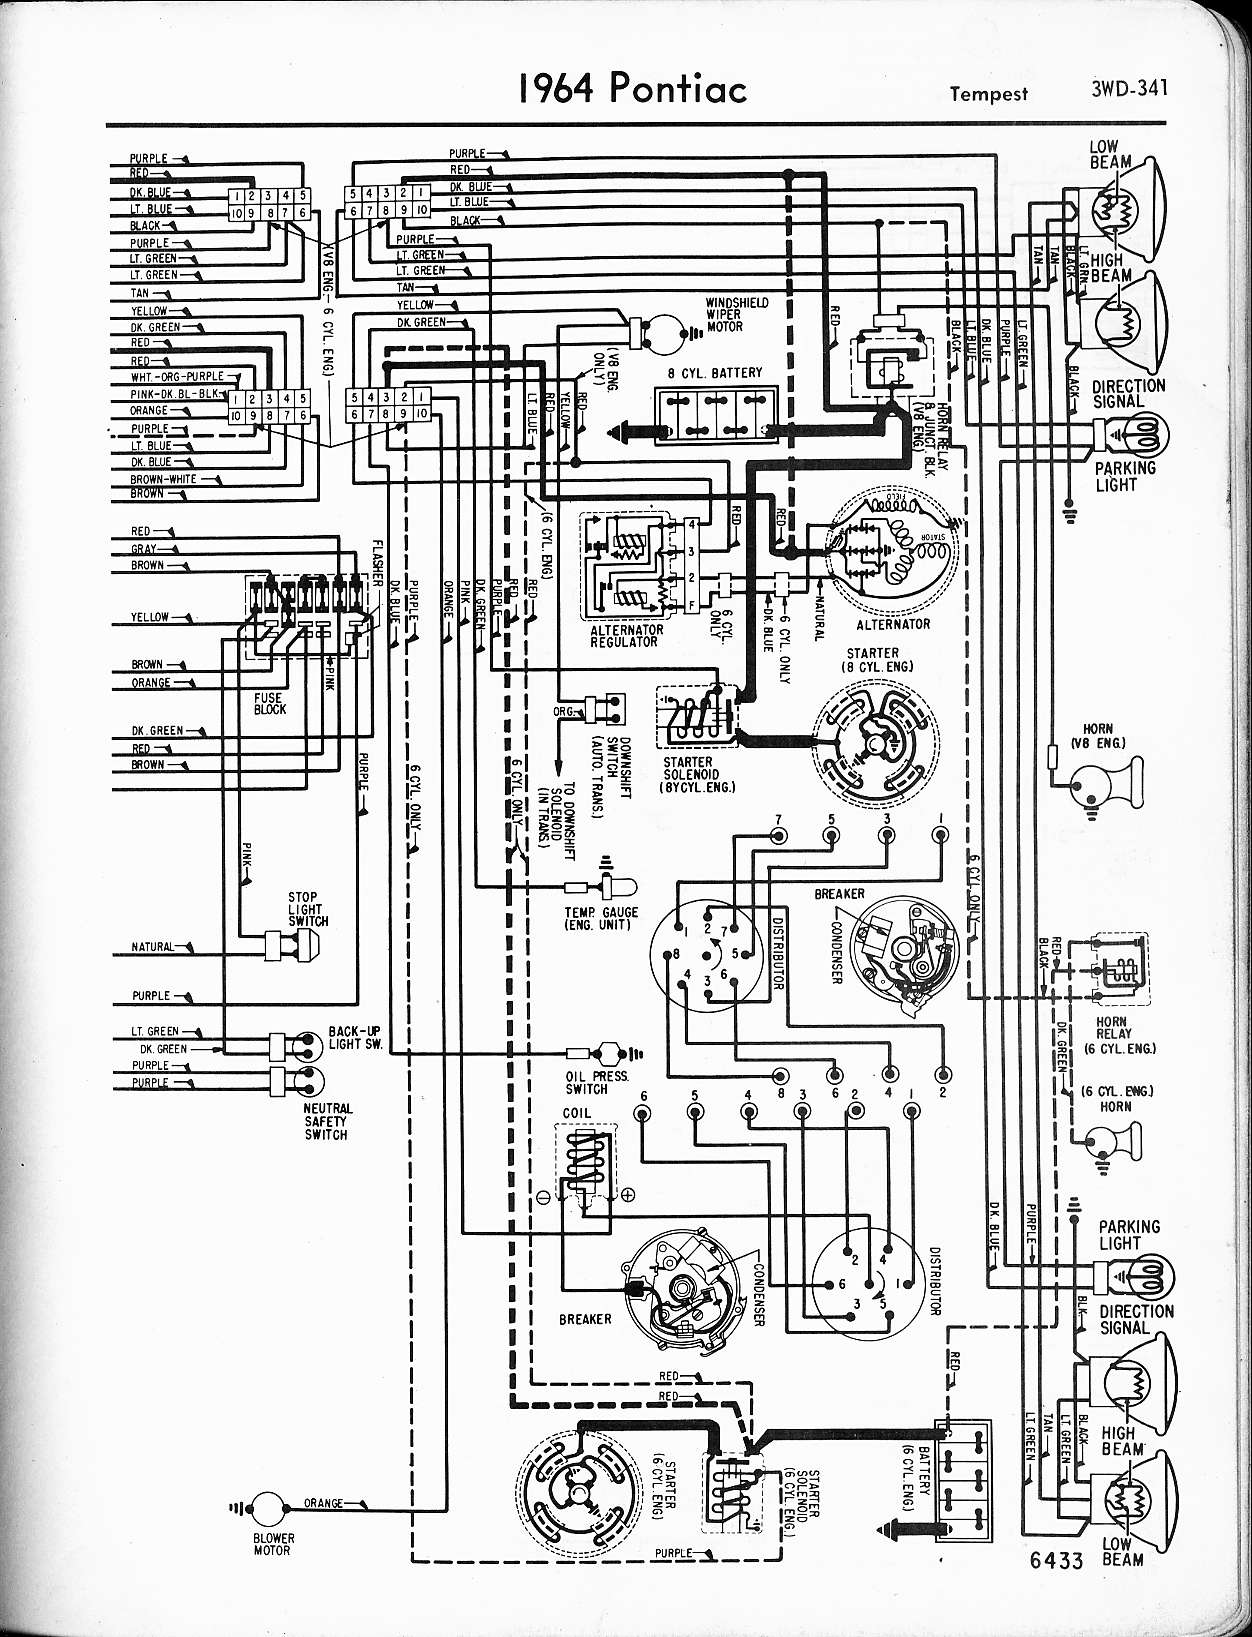 1952 Chevy Pickup Wiring Diagram | Wiring Diagram on